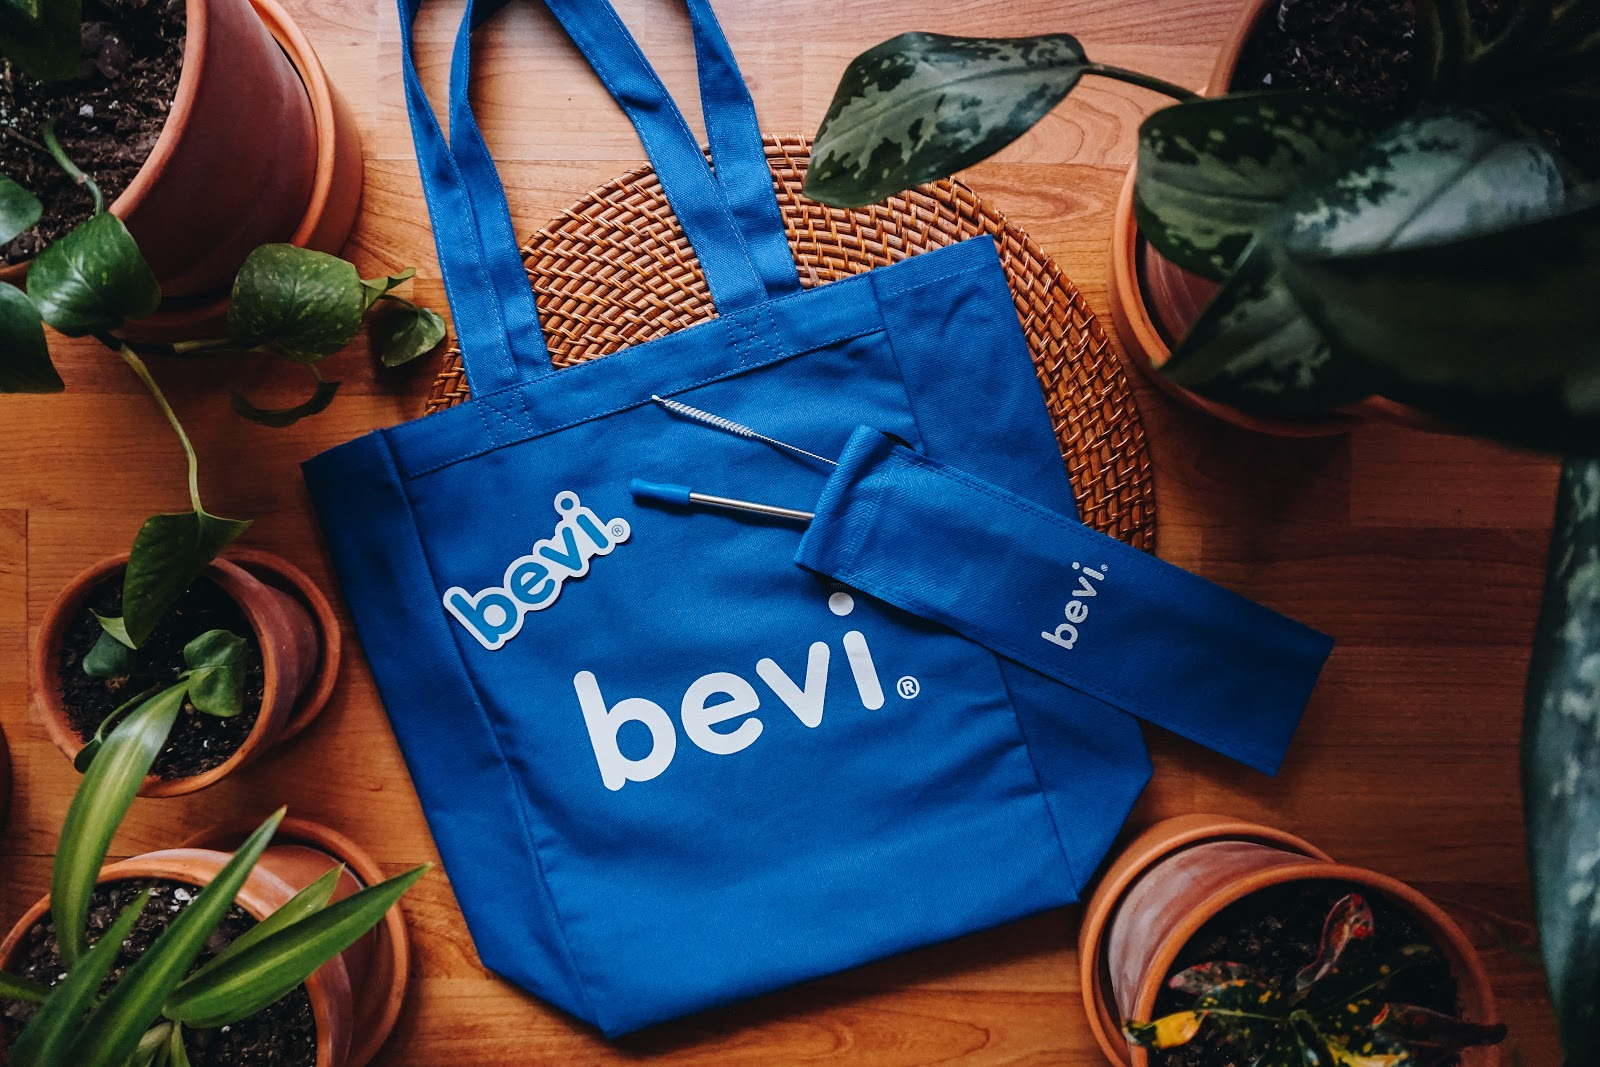 Bevi Smart Water swag - stainless steel straw